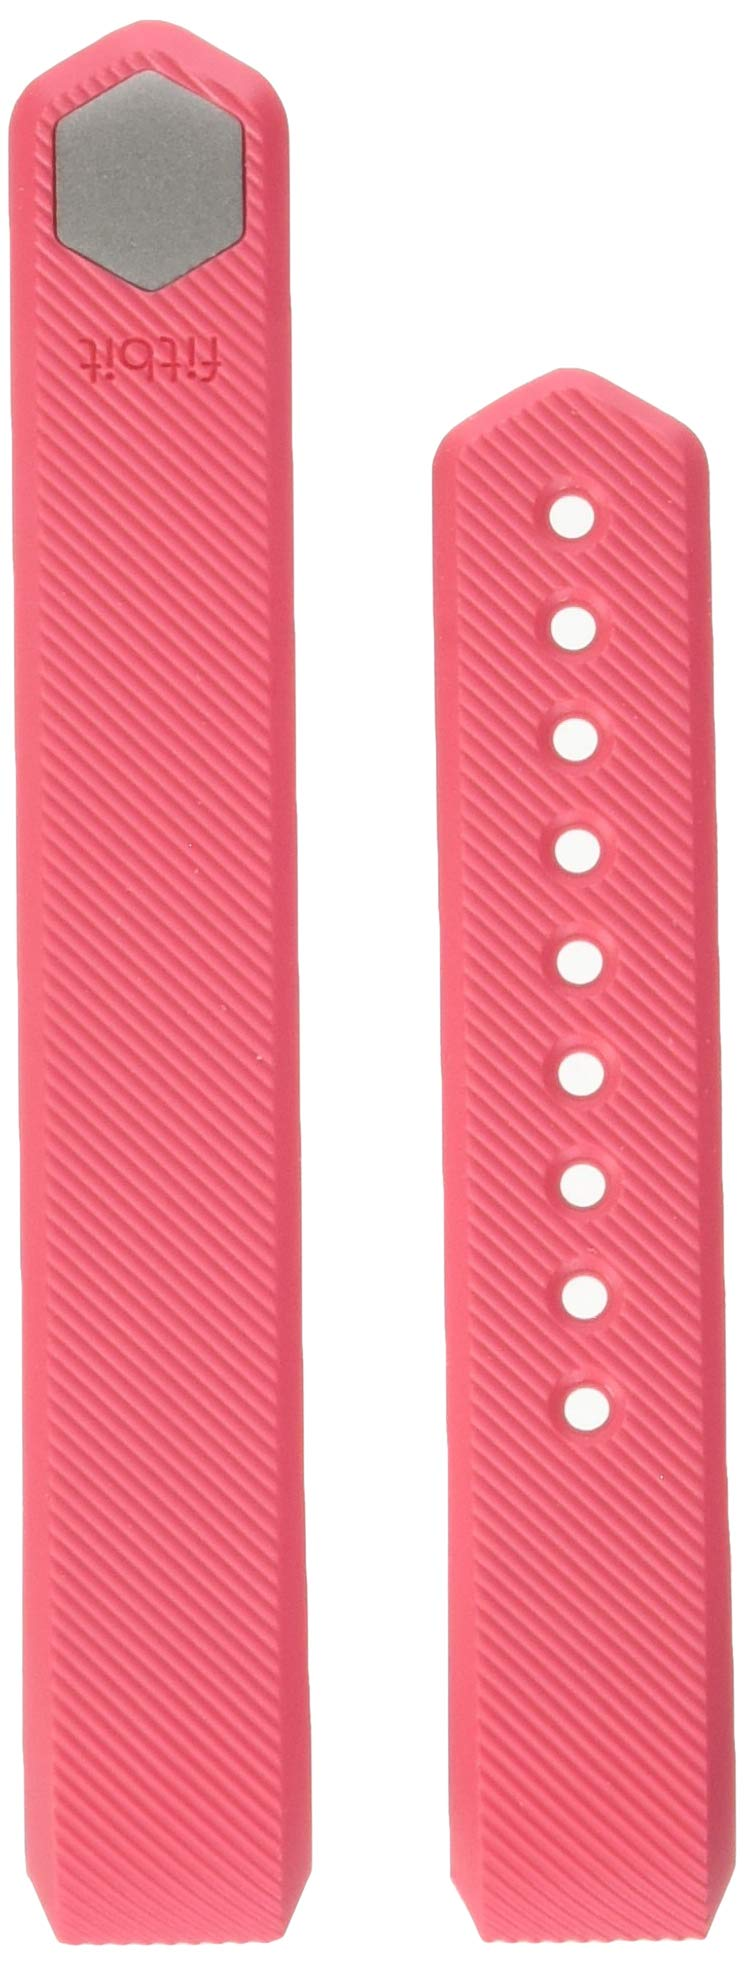 Fitbit Alta Classic Accessory Band, Pink, Small by Fitbit